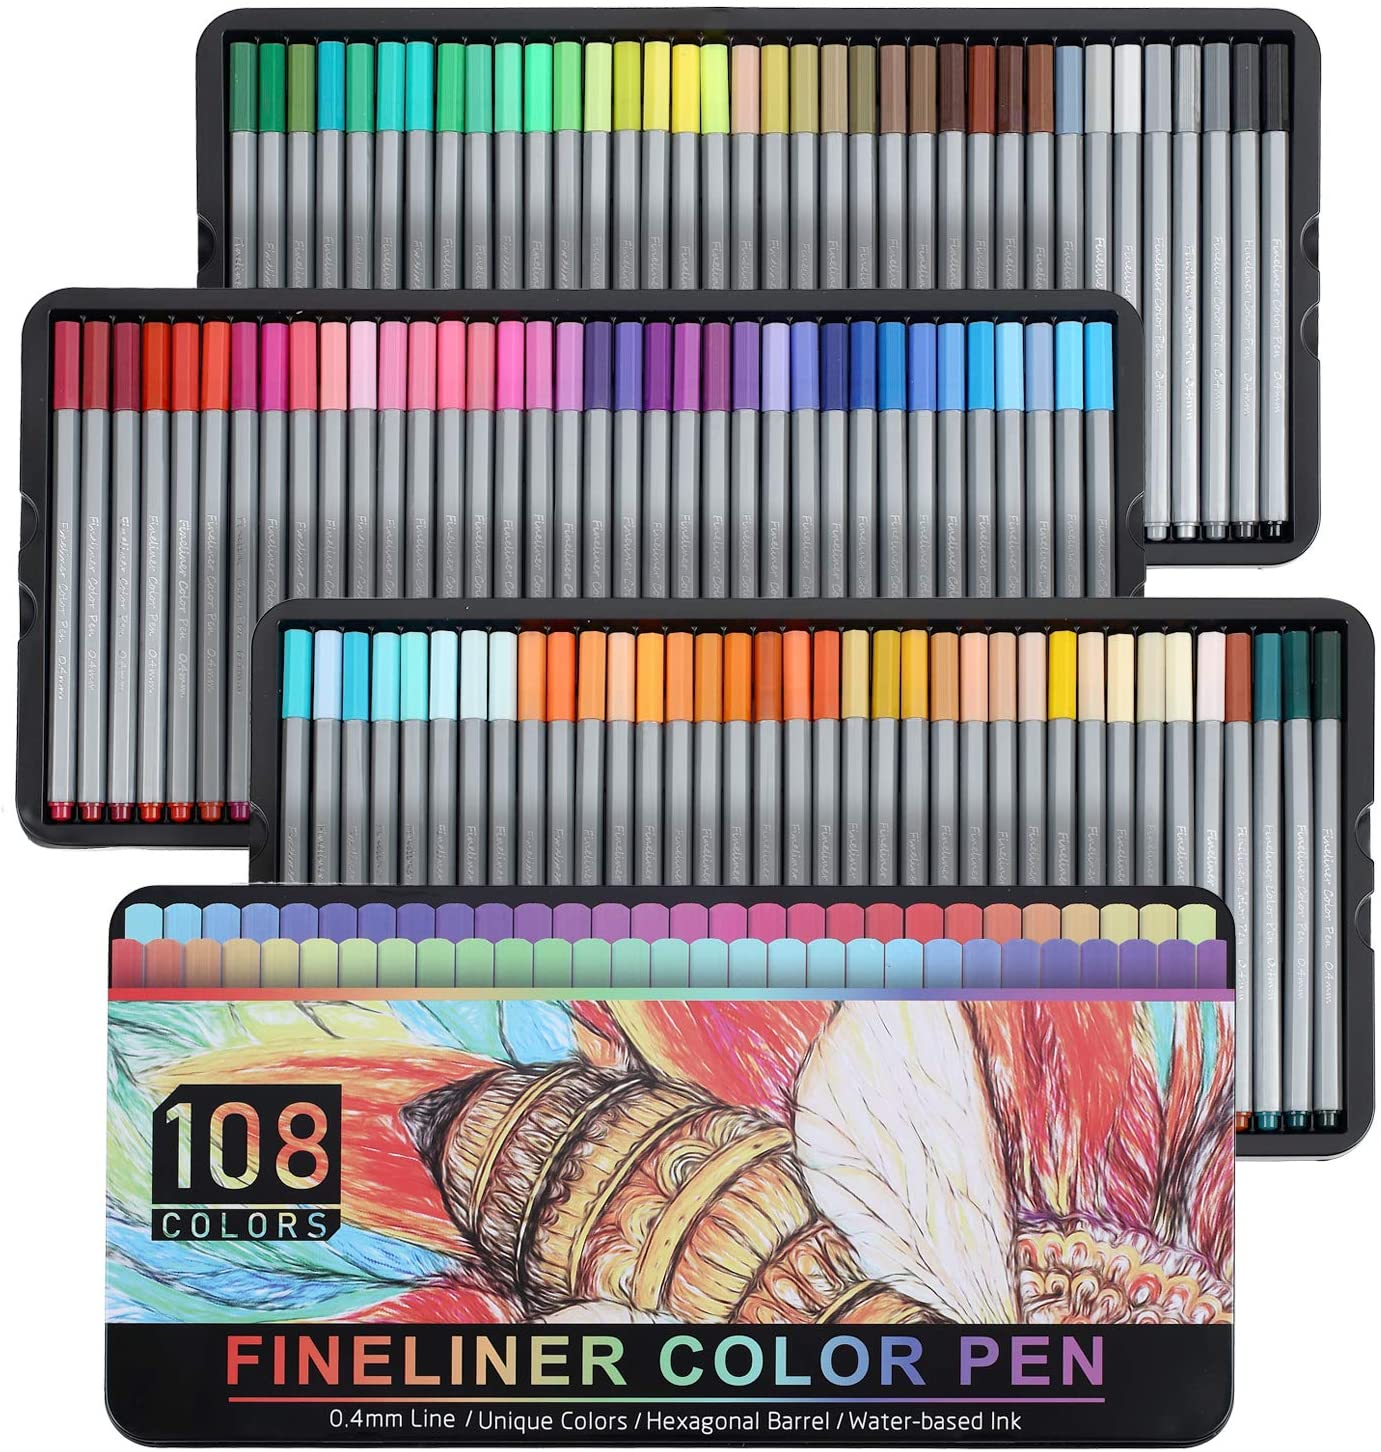 Southsun Fineliner Pens - Set of 108 Colors Fine Point Pens for Bullet Journal, 0.4mm Tip Pens, Art Supplies Colored Pens for Drawings, Journaling, Adult Coloring Book